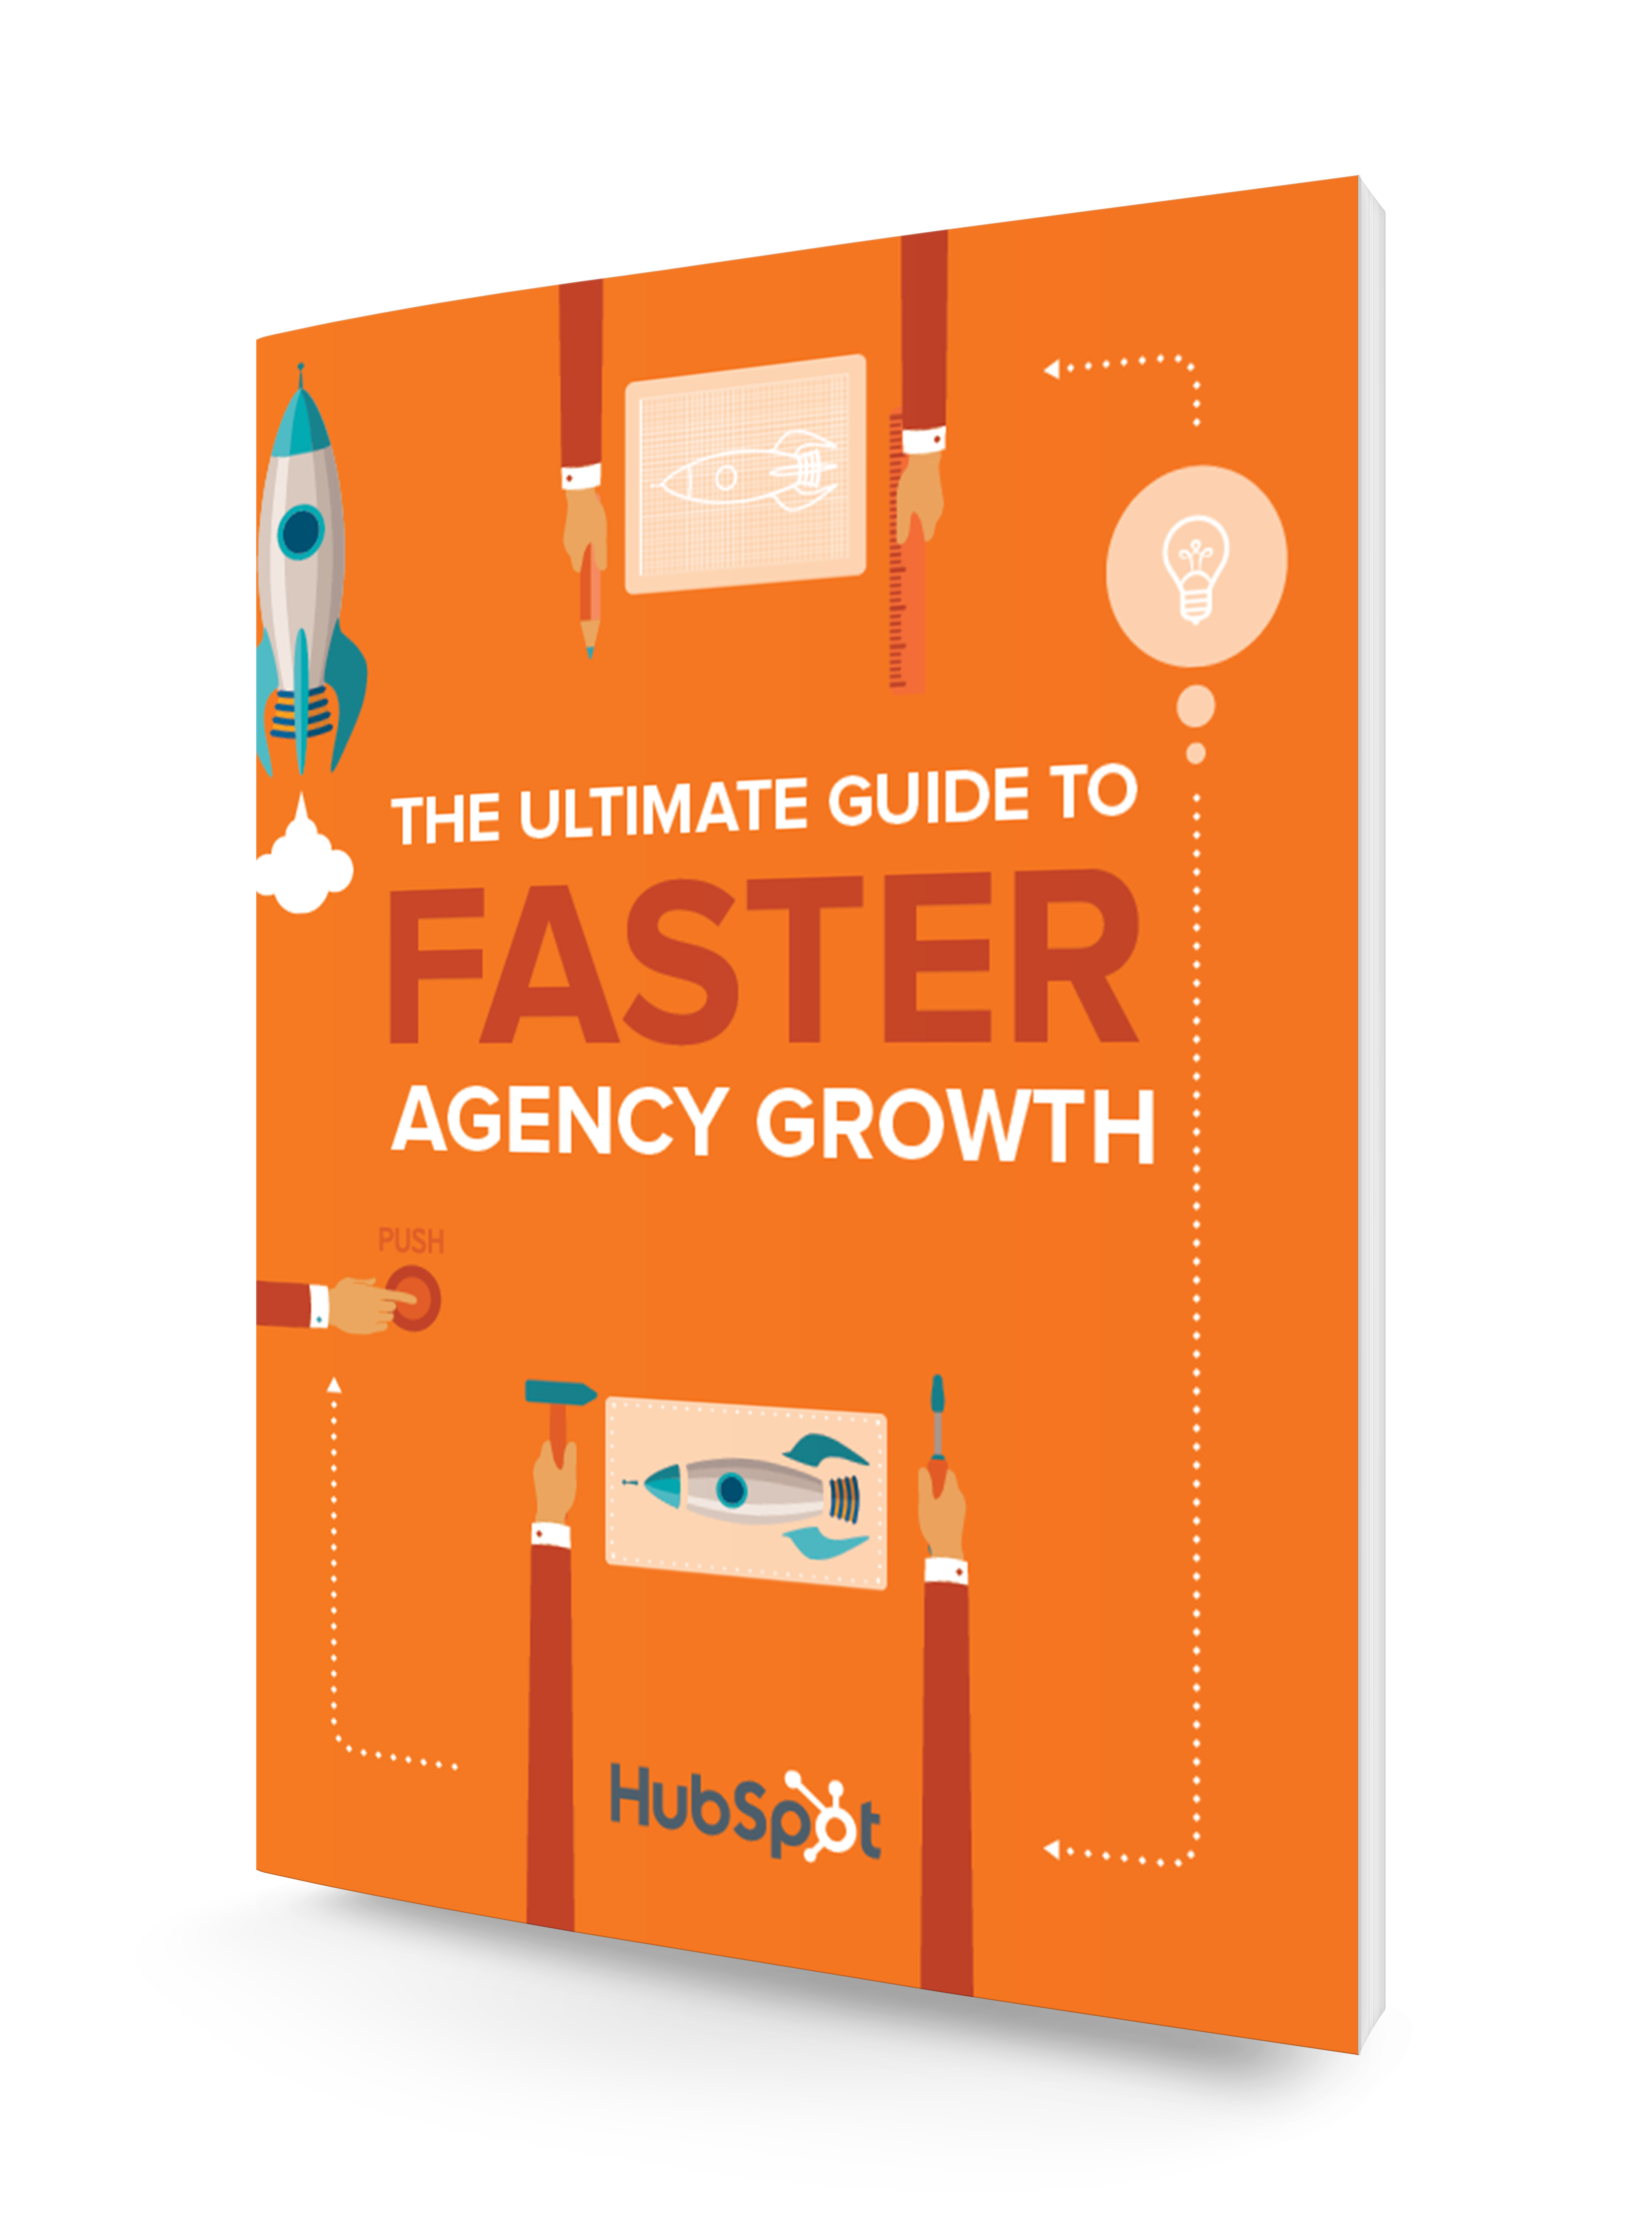 The_Ultimate_Guide_to_Faster_Agency_Growth_Ebook_Cover_2